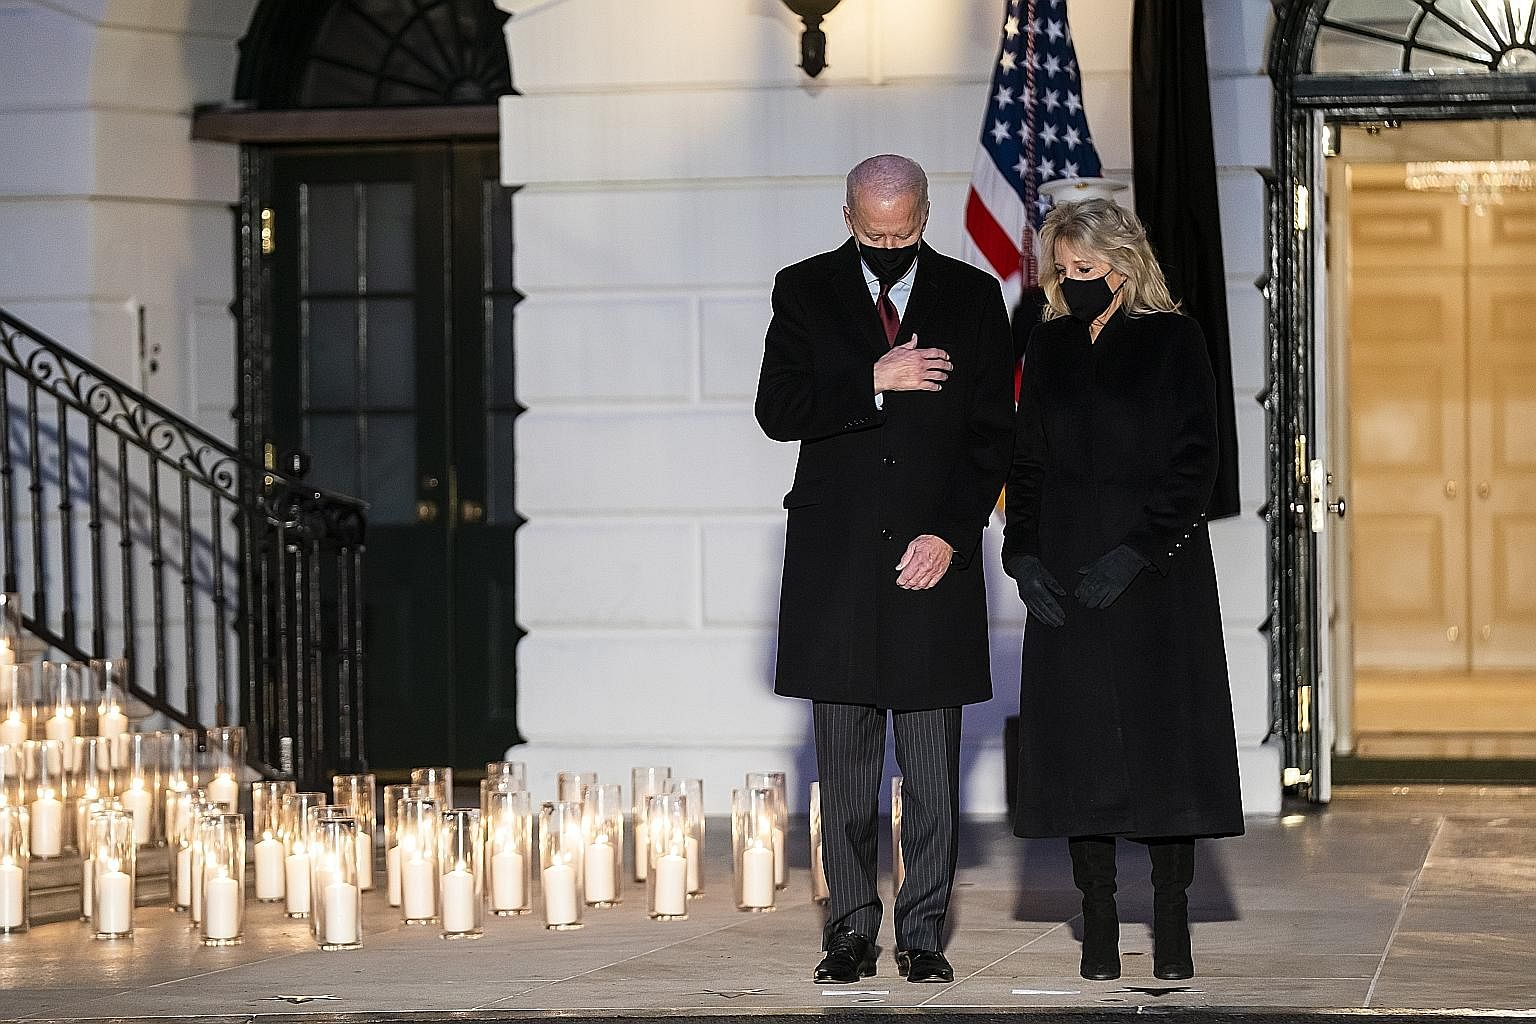 US President Joe Biden and First Lady Jill Biden observing a moment of silence on Monday, at a White House ceremony to mourn the more than 500,000 lives lost to Covid-19 in the country.